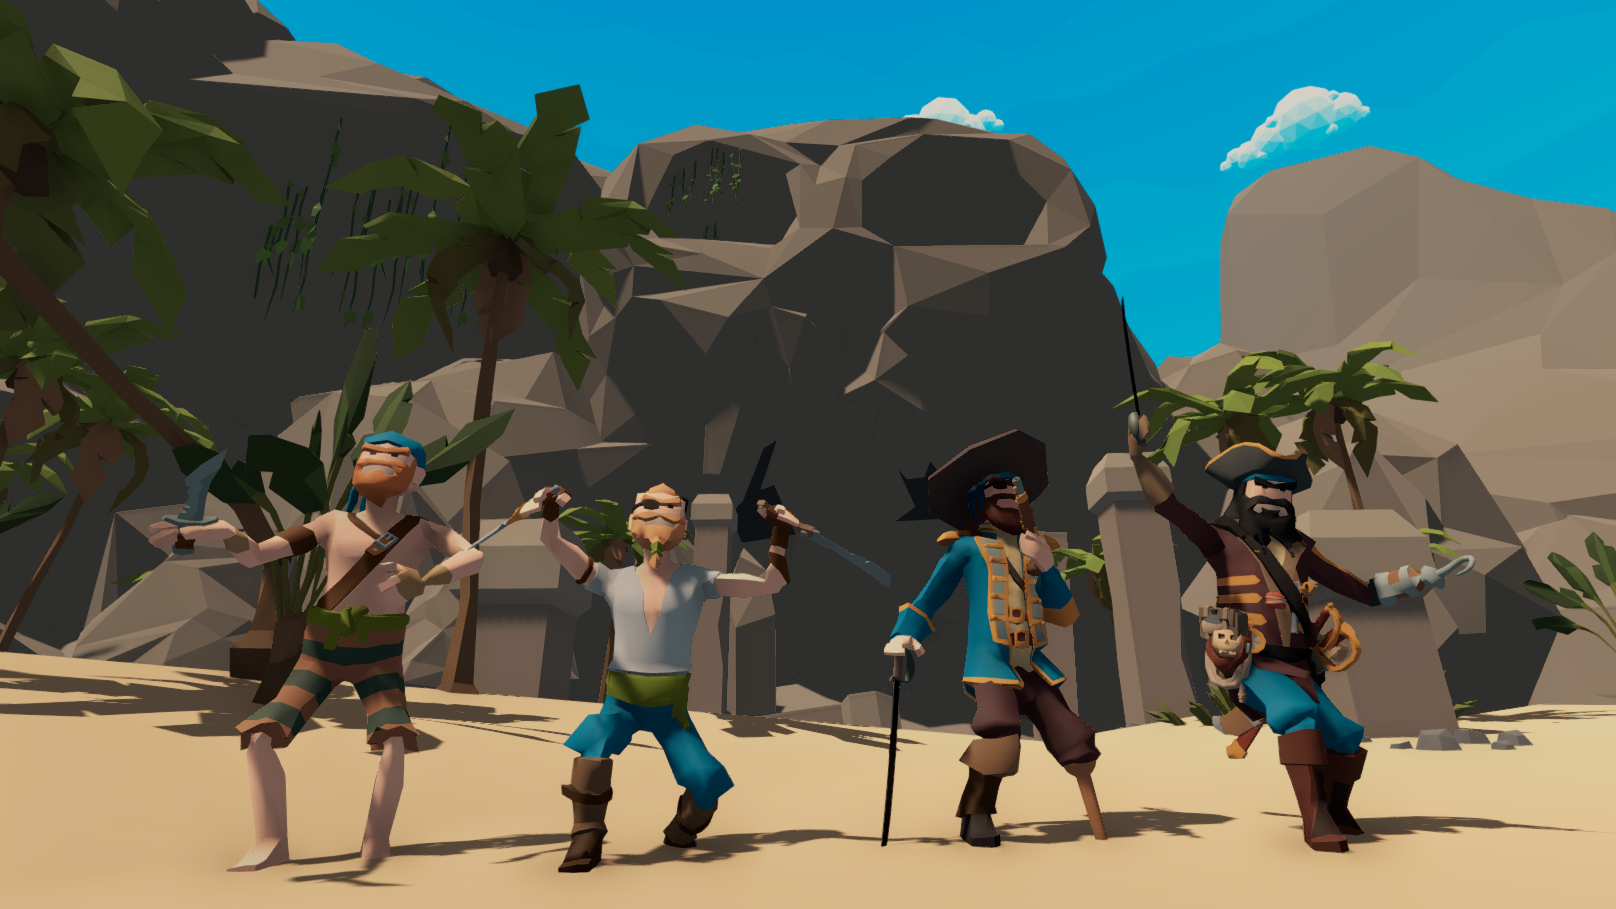 Gather your crew - Before you start pillaging and plundering, round up a crew with a size of your liking. Invite your friends or join open games and enjoy online battles!